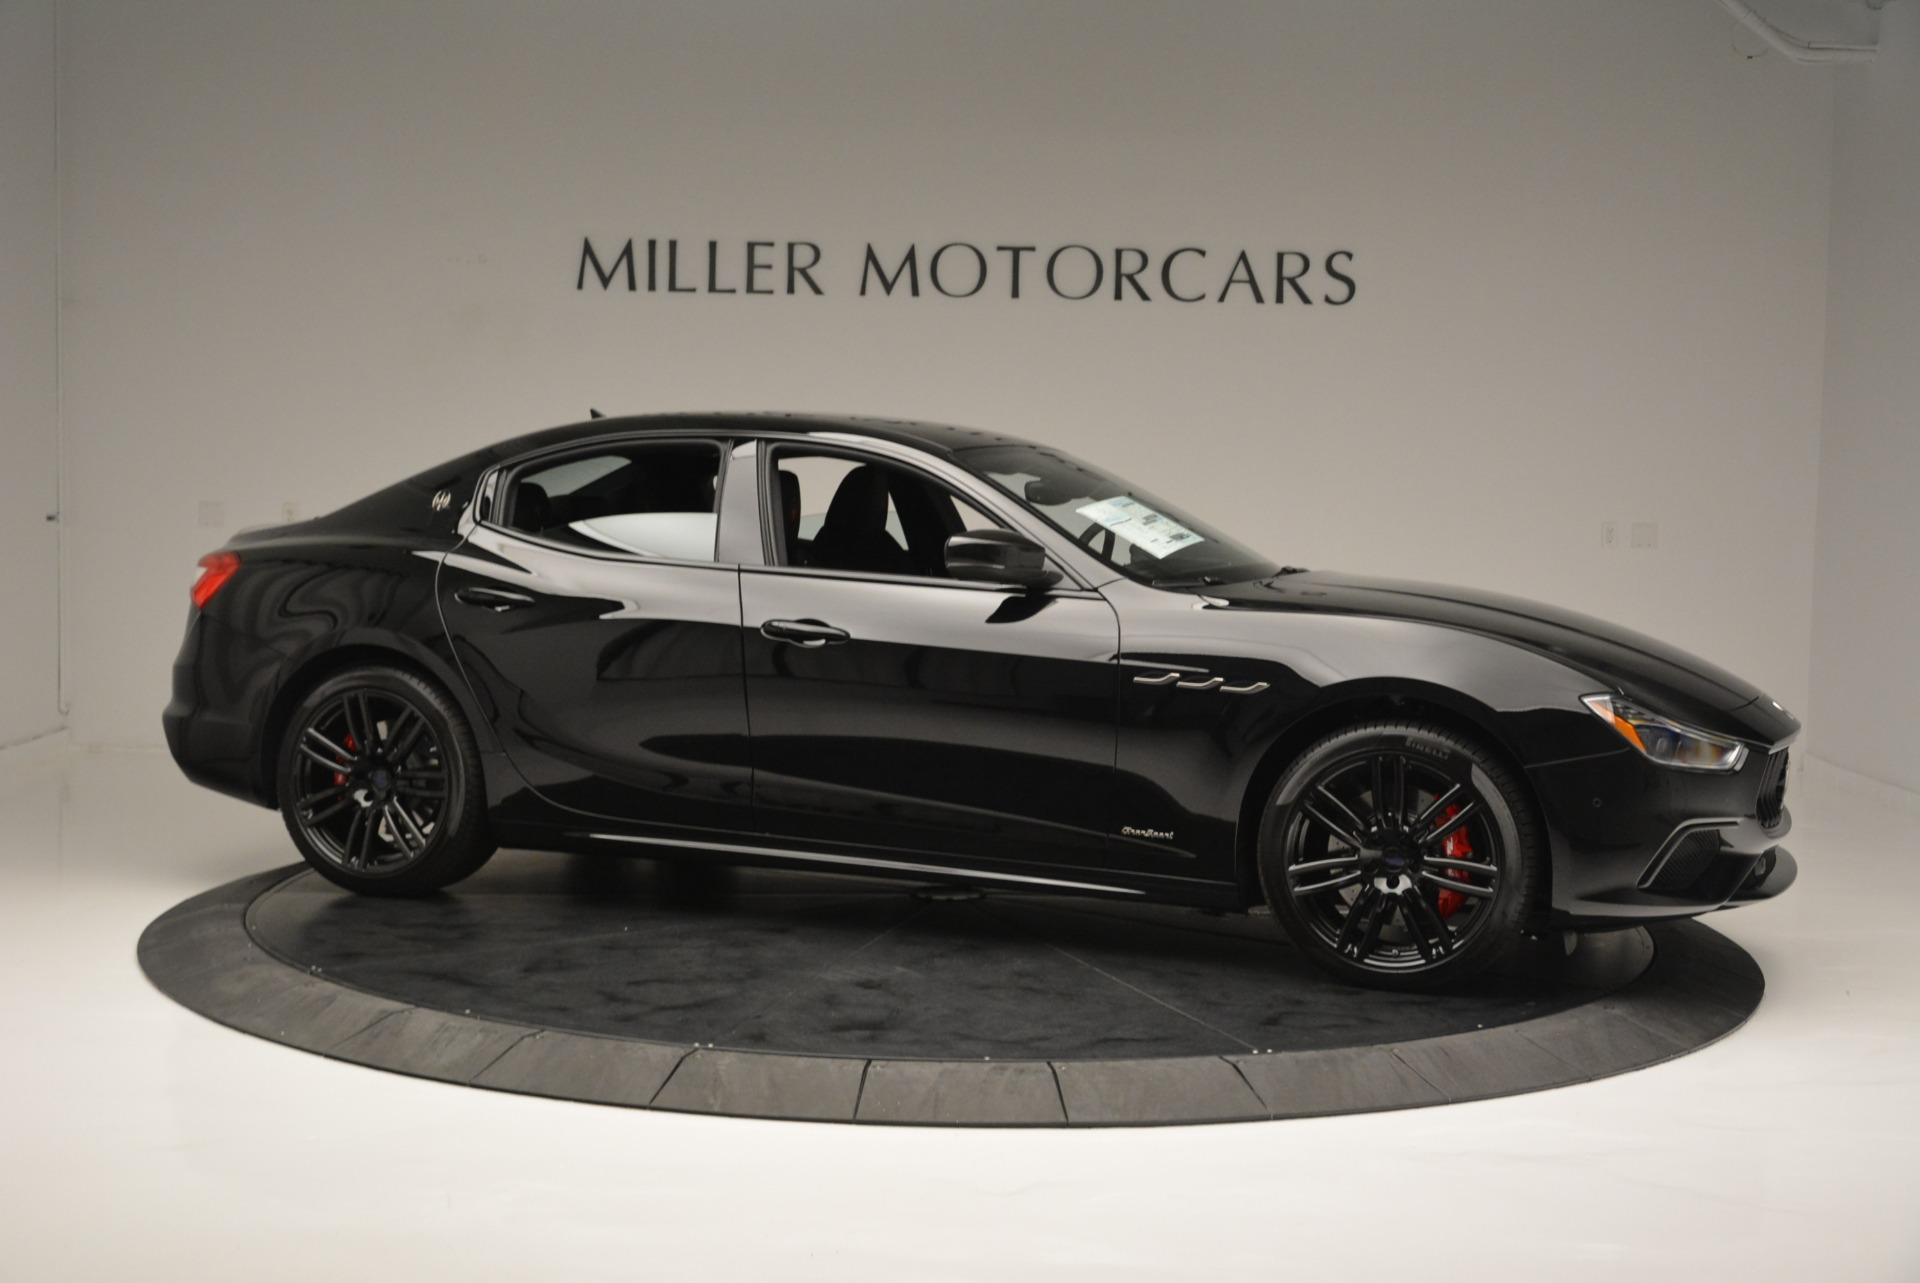 New 2018 Maserati Ghibli SQ4 GranSport Nerissimo For Sale In Westport, CT 2366_p10